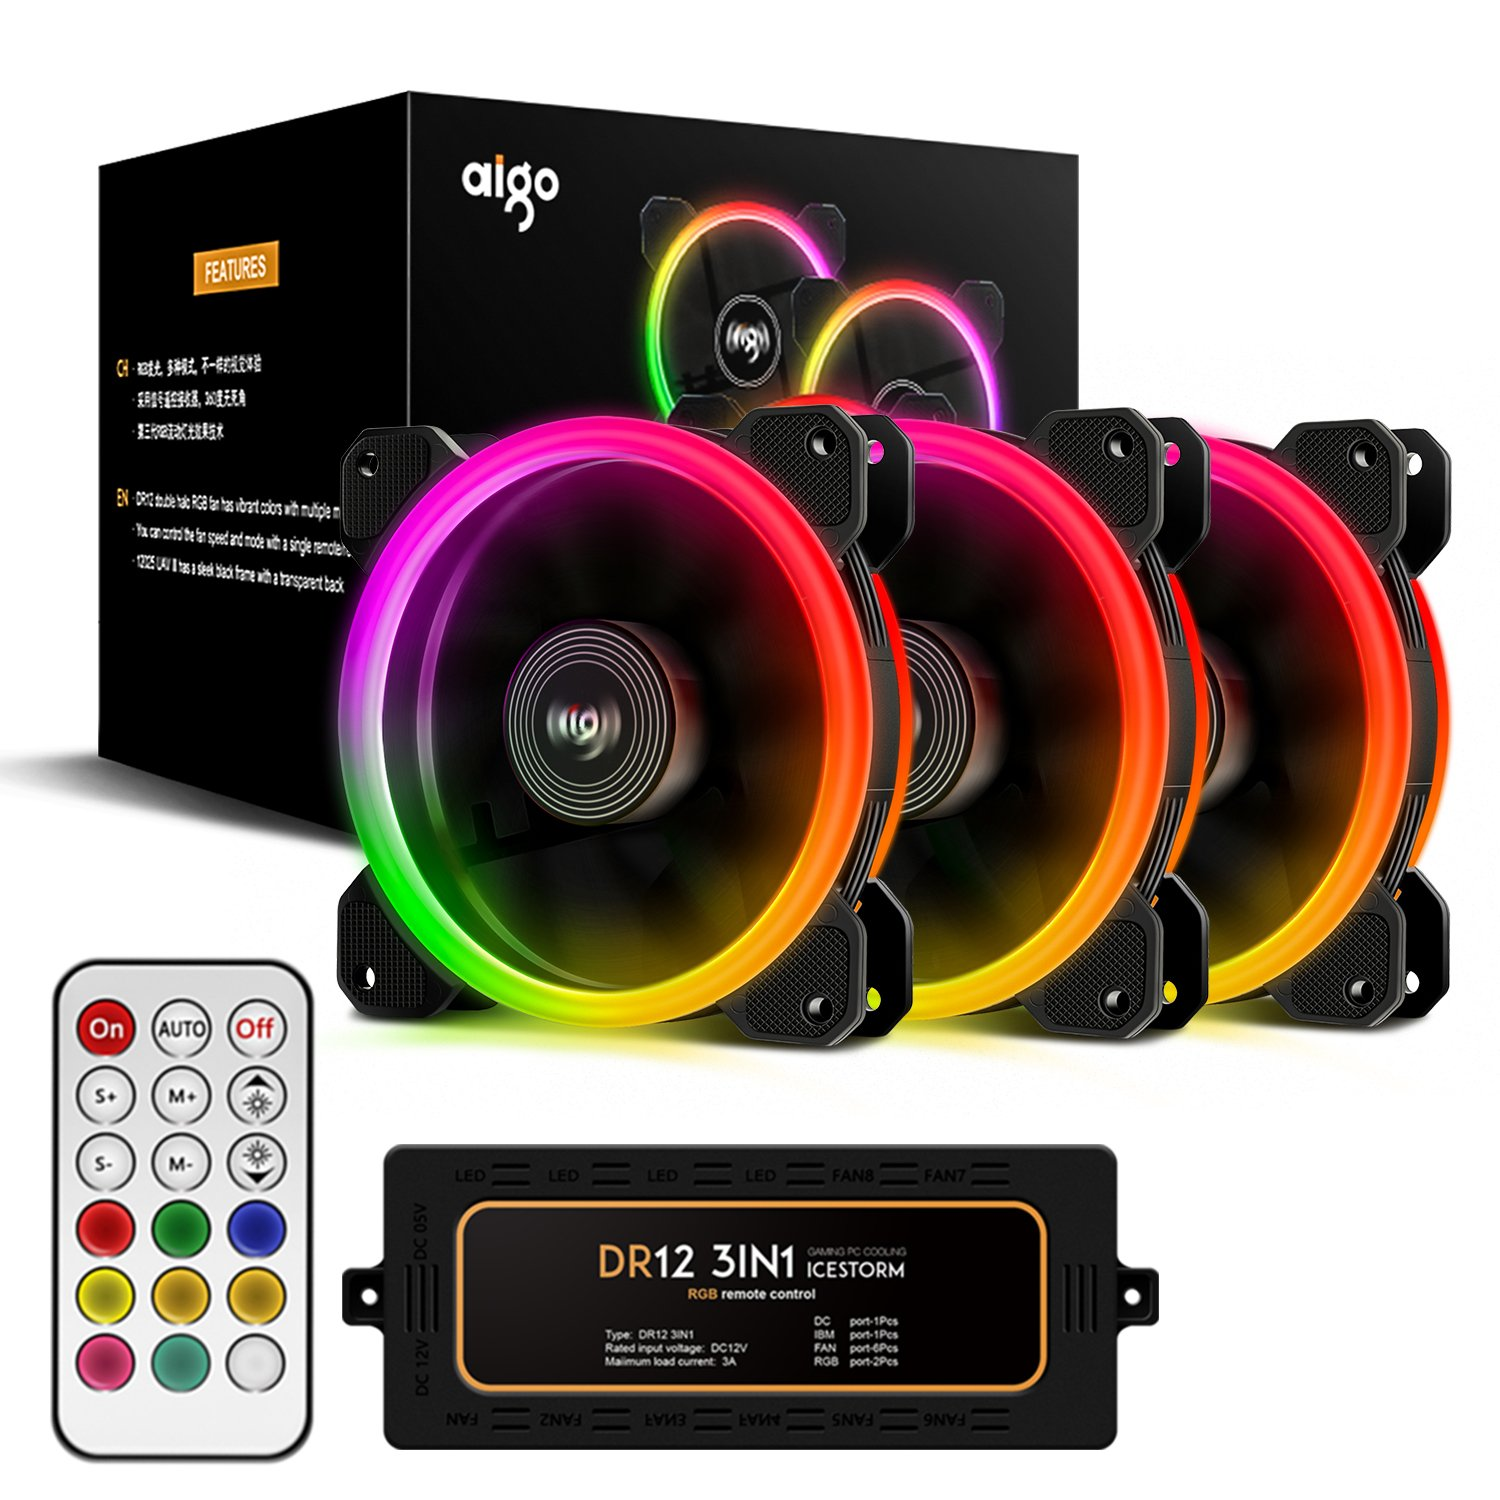 Aigo Aurora DR12 3IN1 Kit Case Fan 3-Pack RGB LED 120mm High Performance High Airflow Adjustable colorful PC CPU Computer Case Cooling Cooler with Controller (DR12 3IN1)